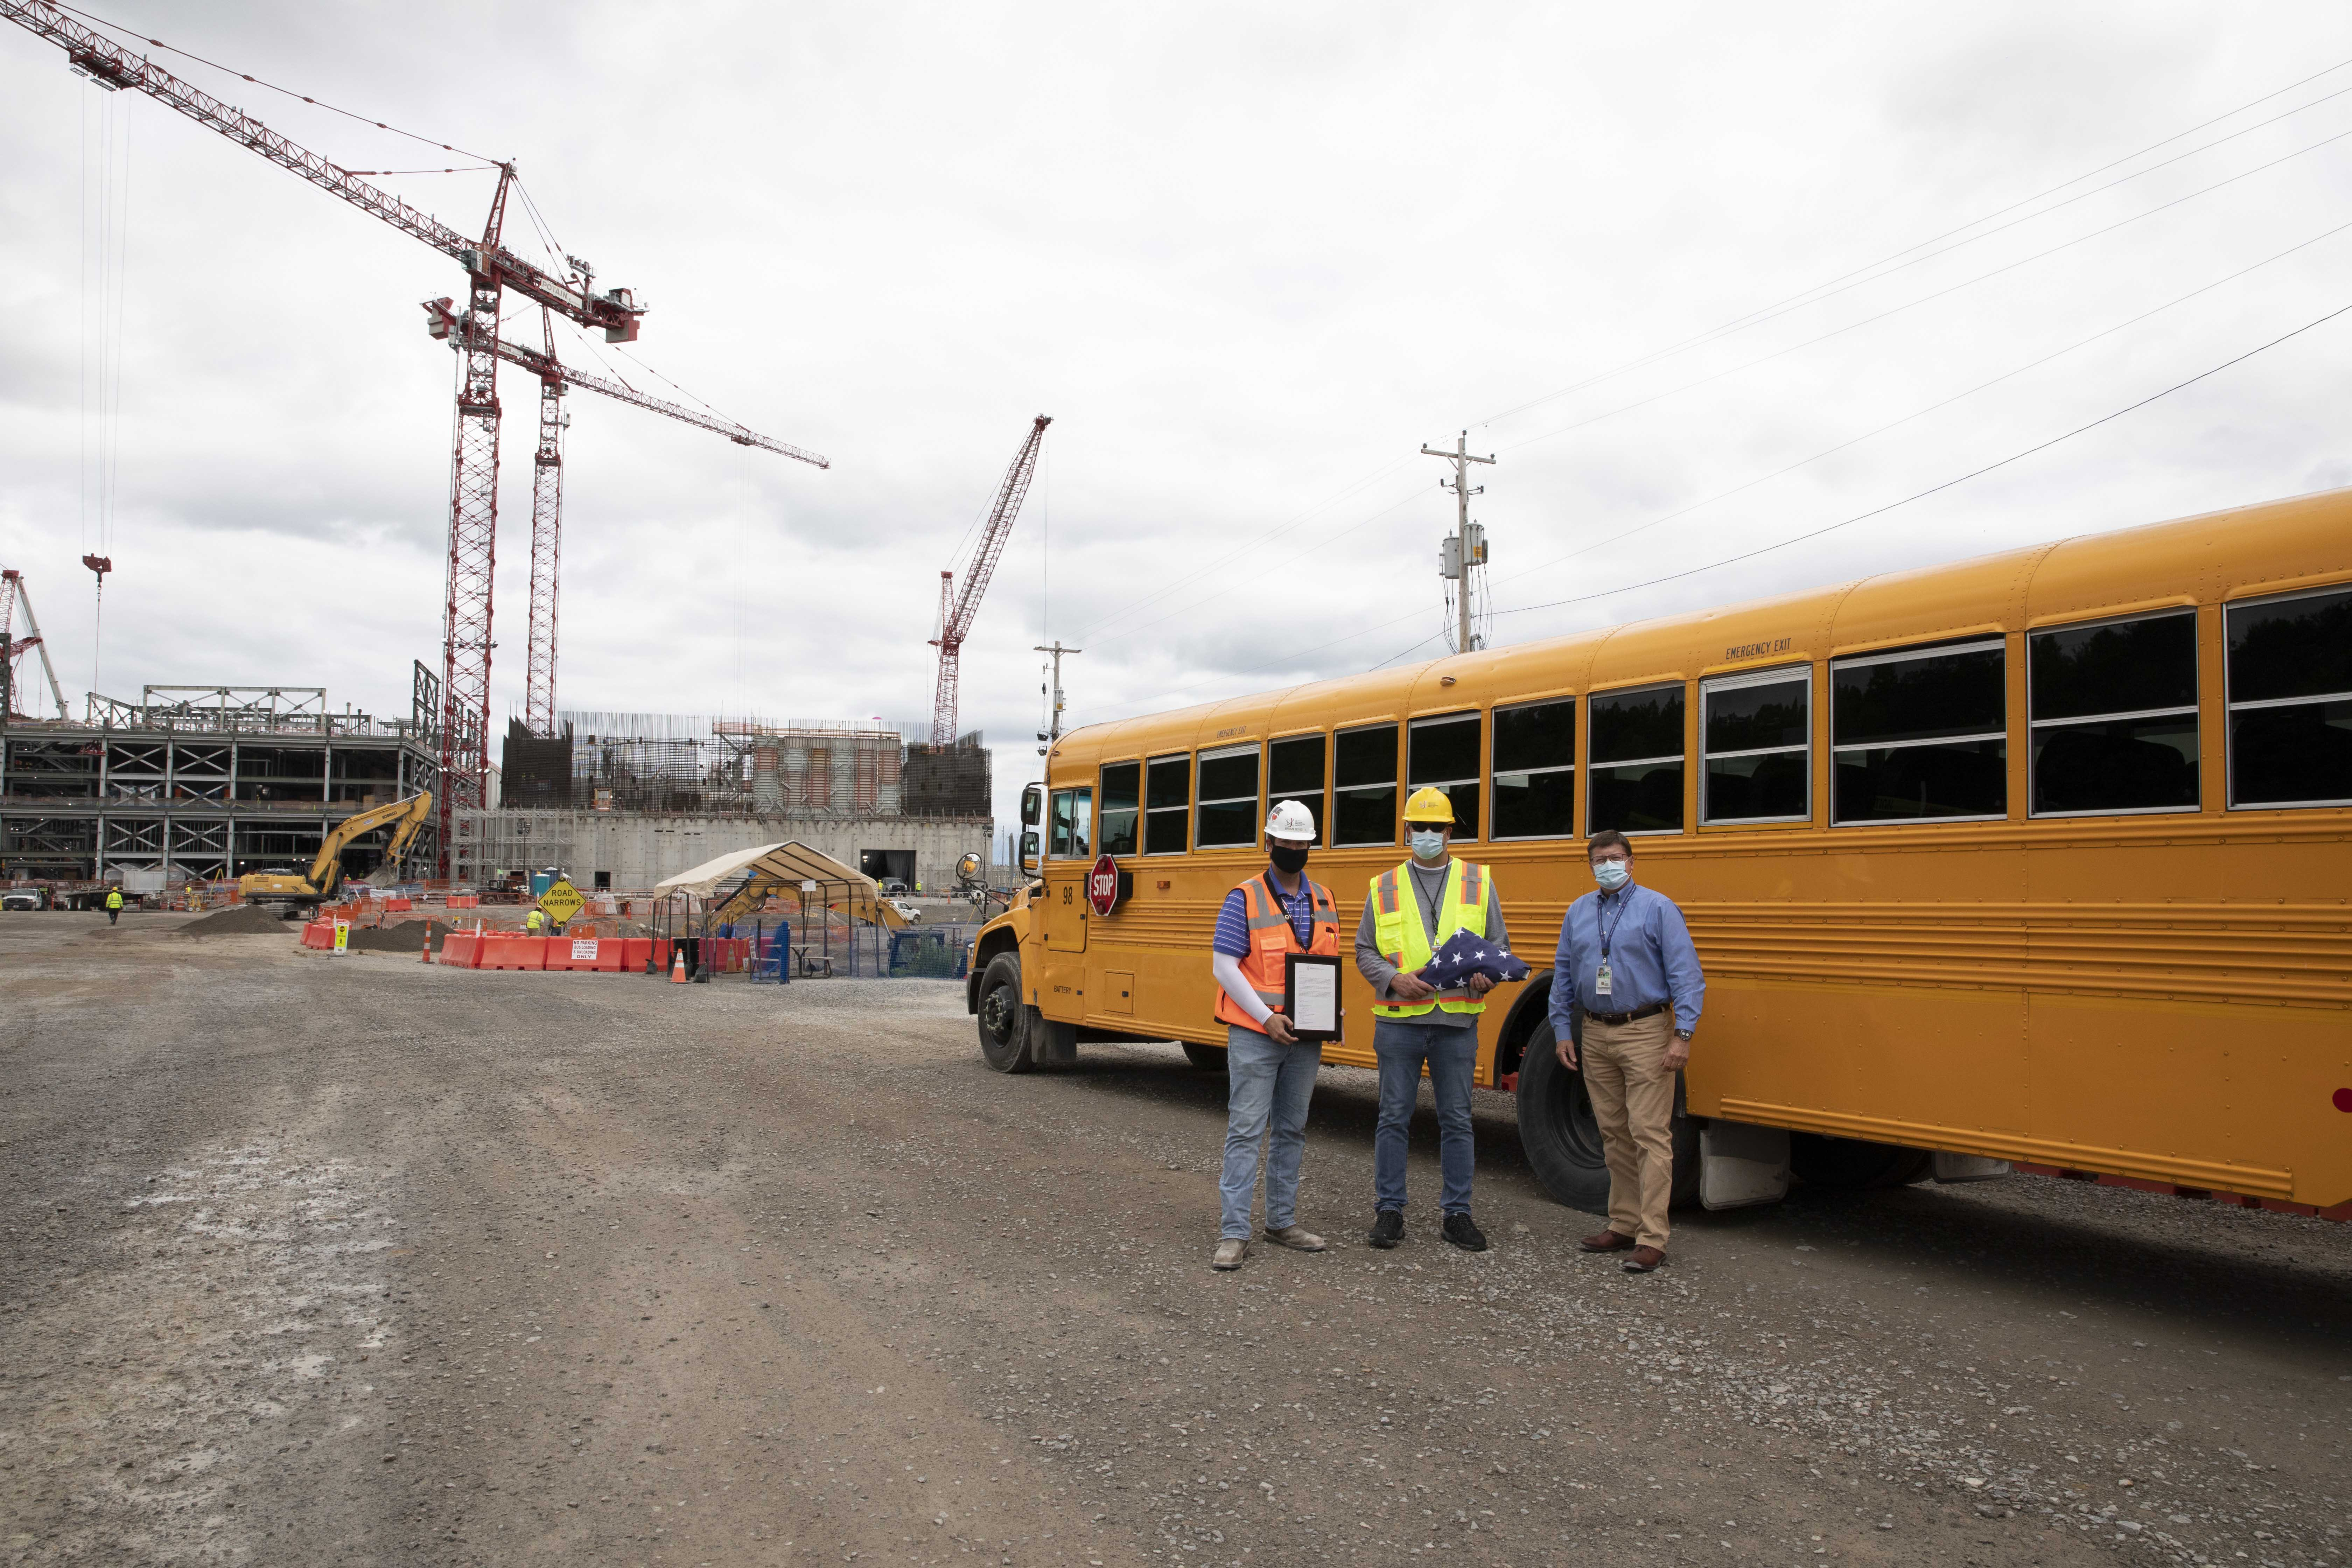 The UPF Project recognizes Lynch Bus Lines, a local school bus contractor, for their assistance during COVID-19 operations